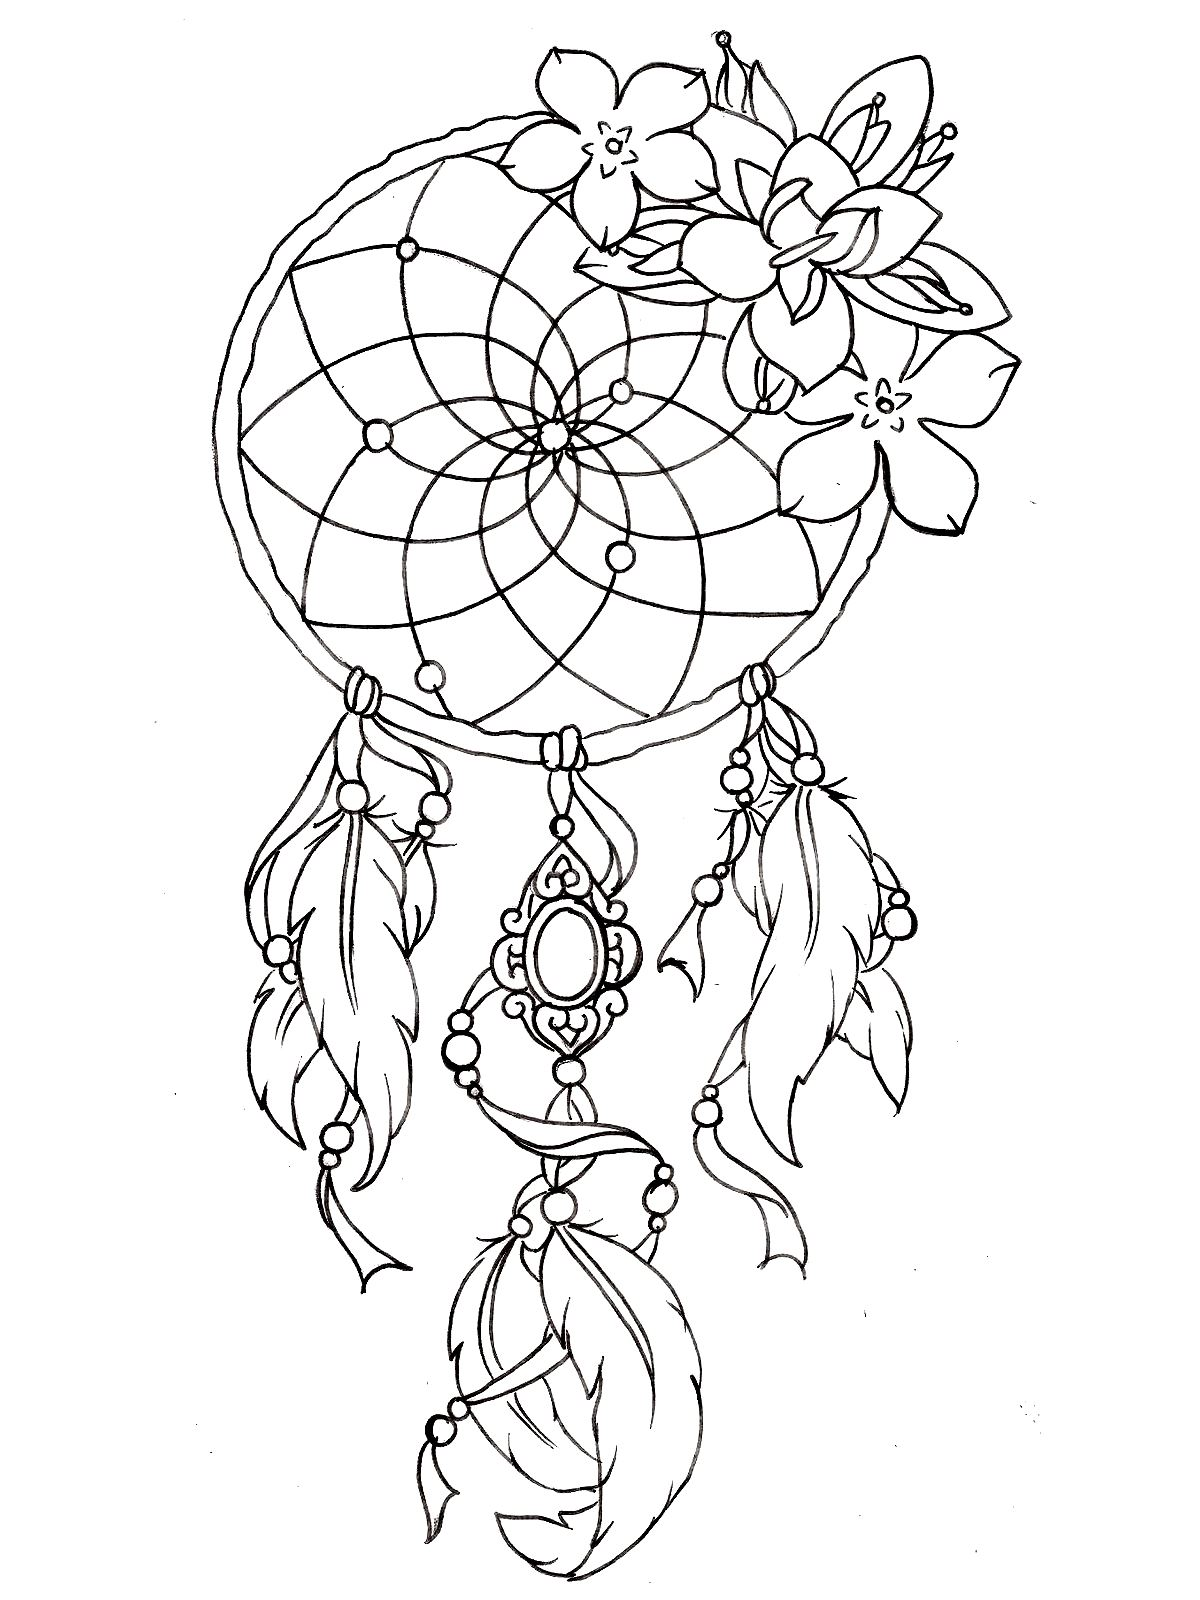 Dreamcatcher tattoo designs | Tattoos - Coloring pages for adults ...